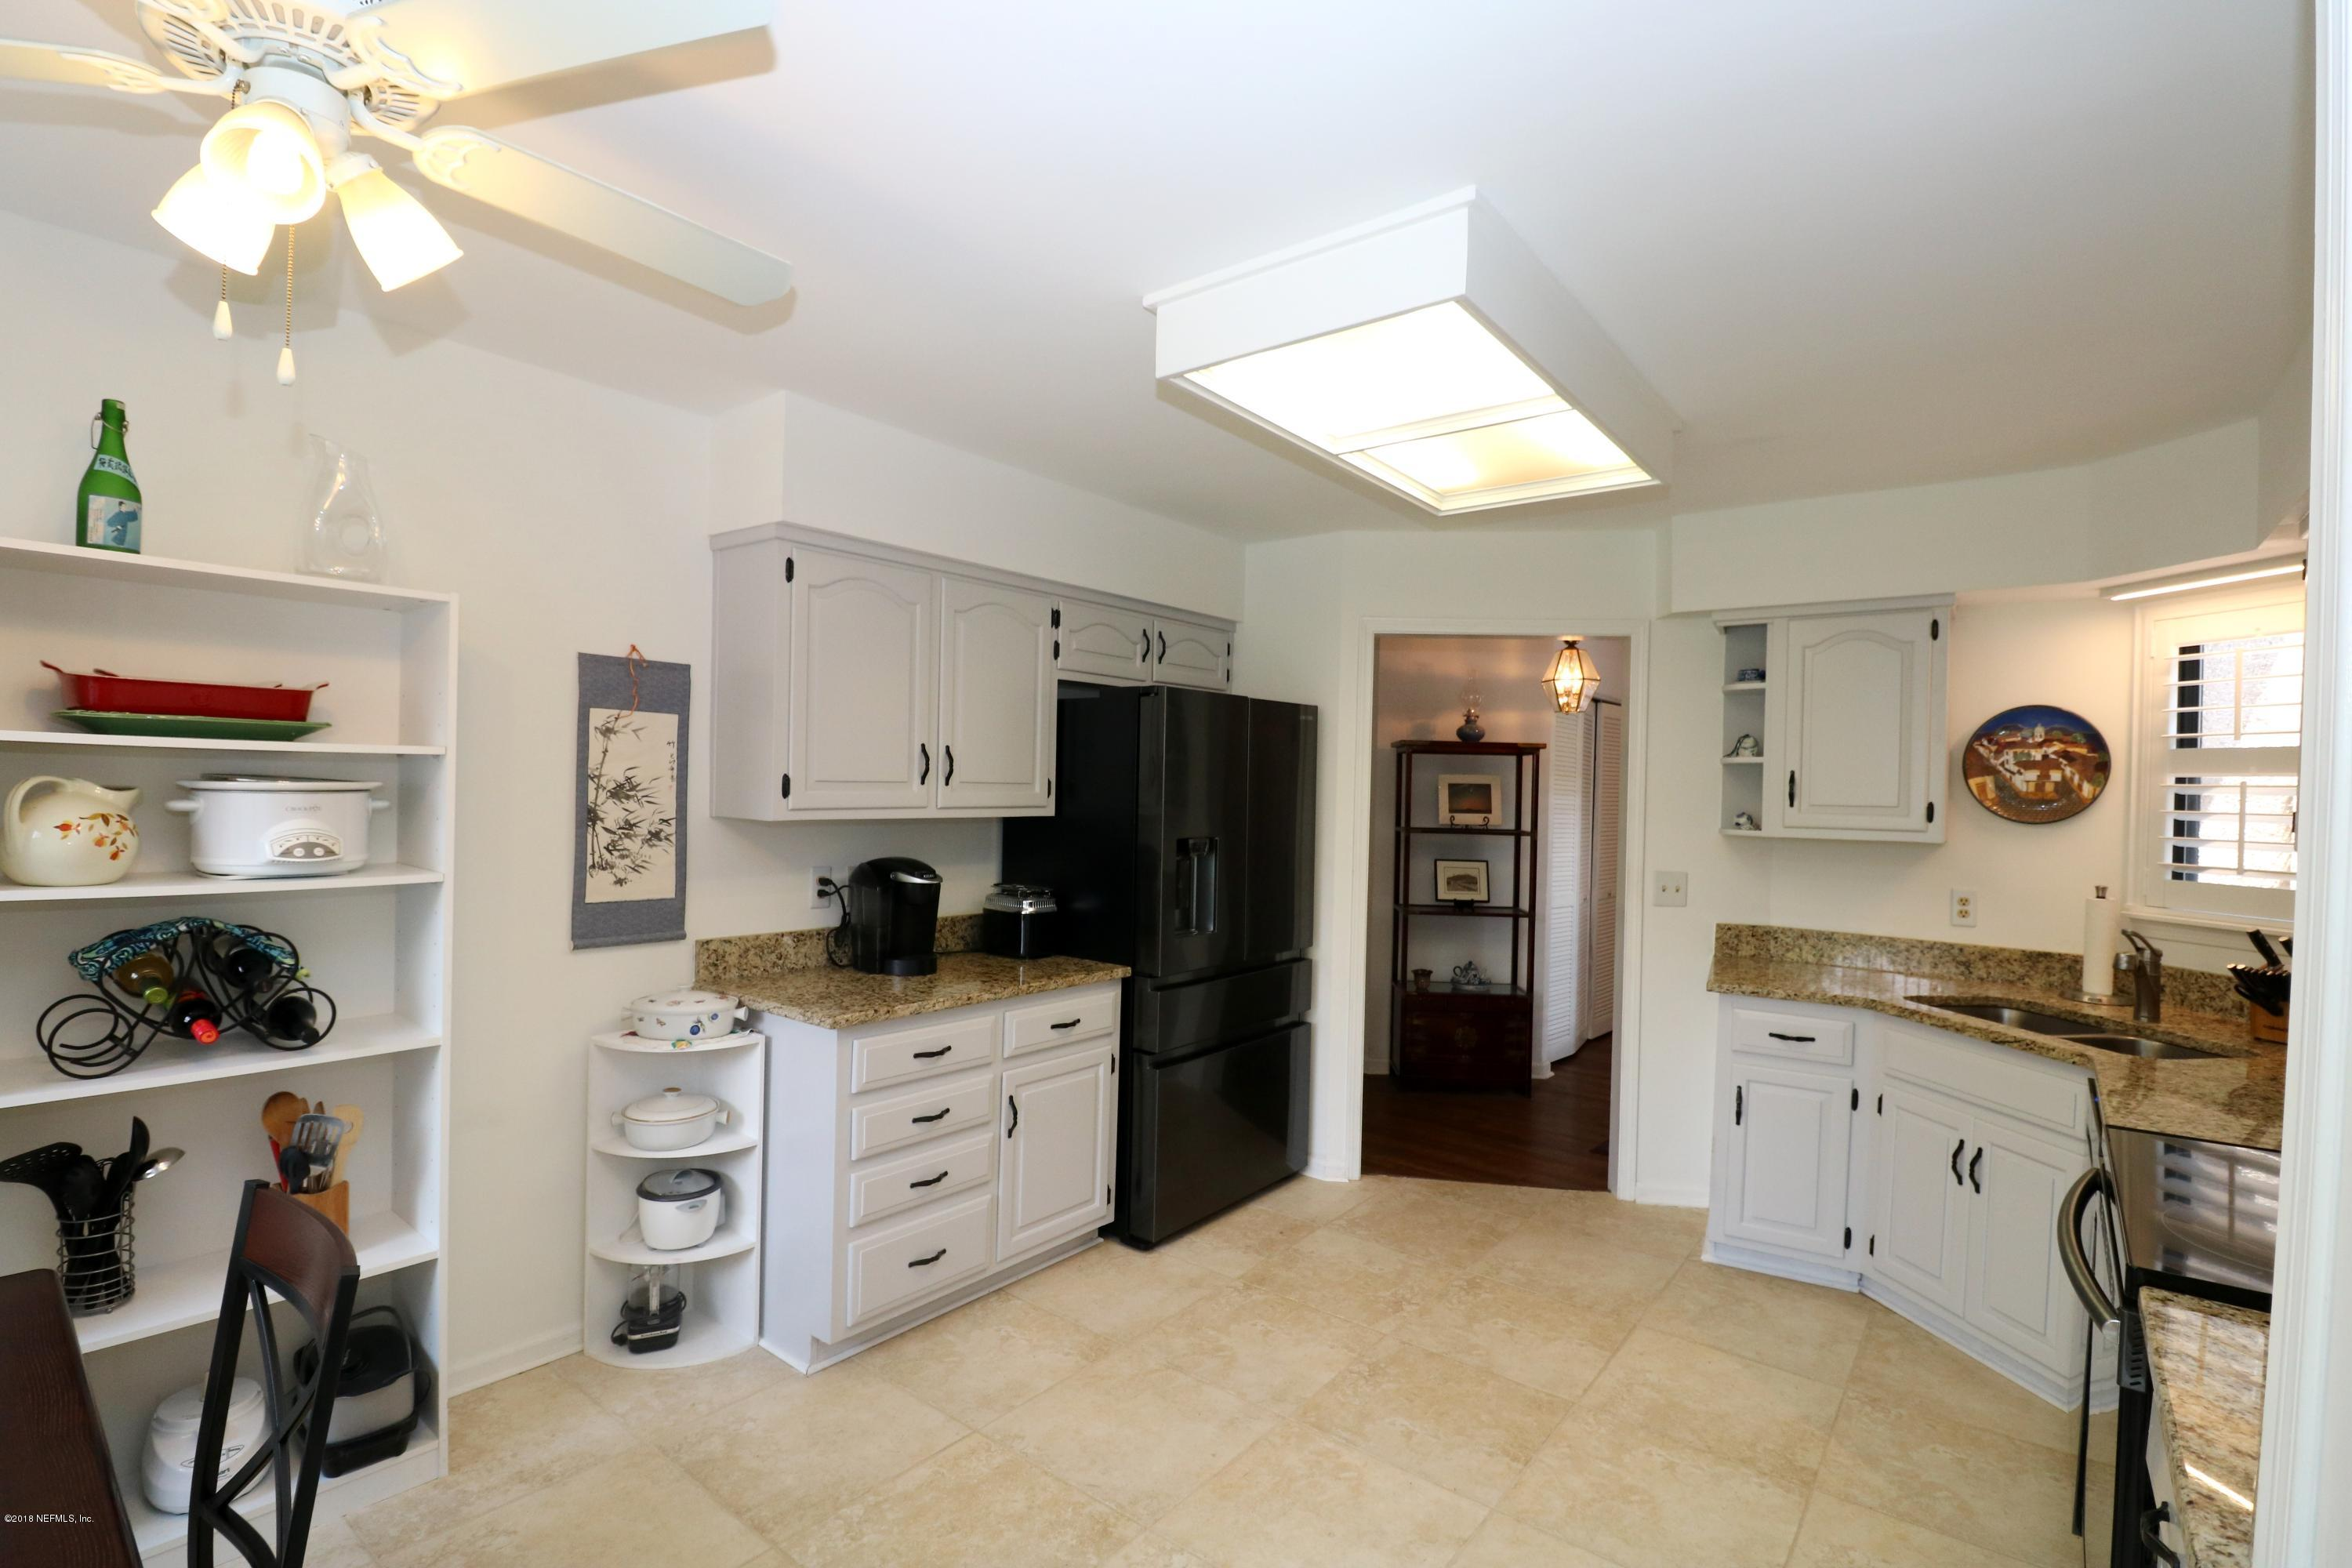 107 DUCK BILL, PONTE VEDRA BEACH, FLORIDA 32082, 3 Bedrooms Bedrooms, ,2 BathroomsBathrooms,Residential - single family,For sale,DUCK BILL,947462